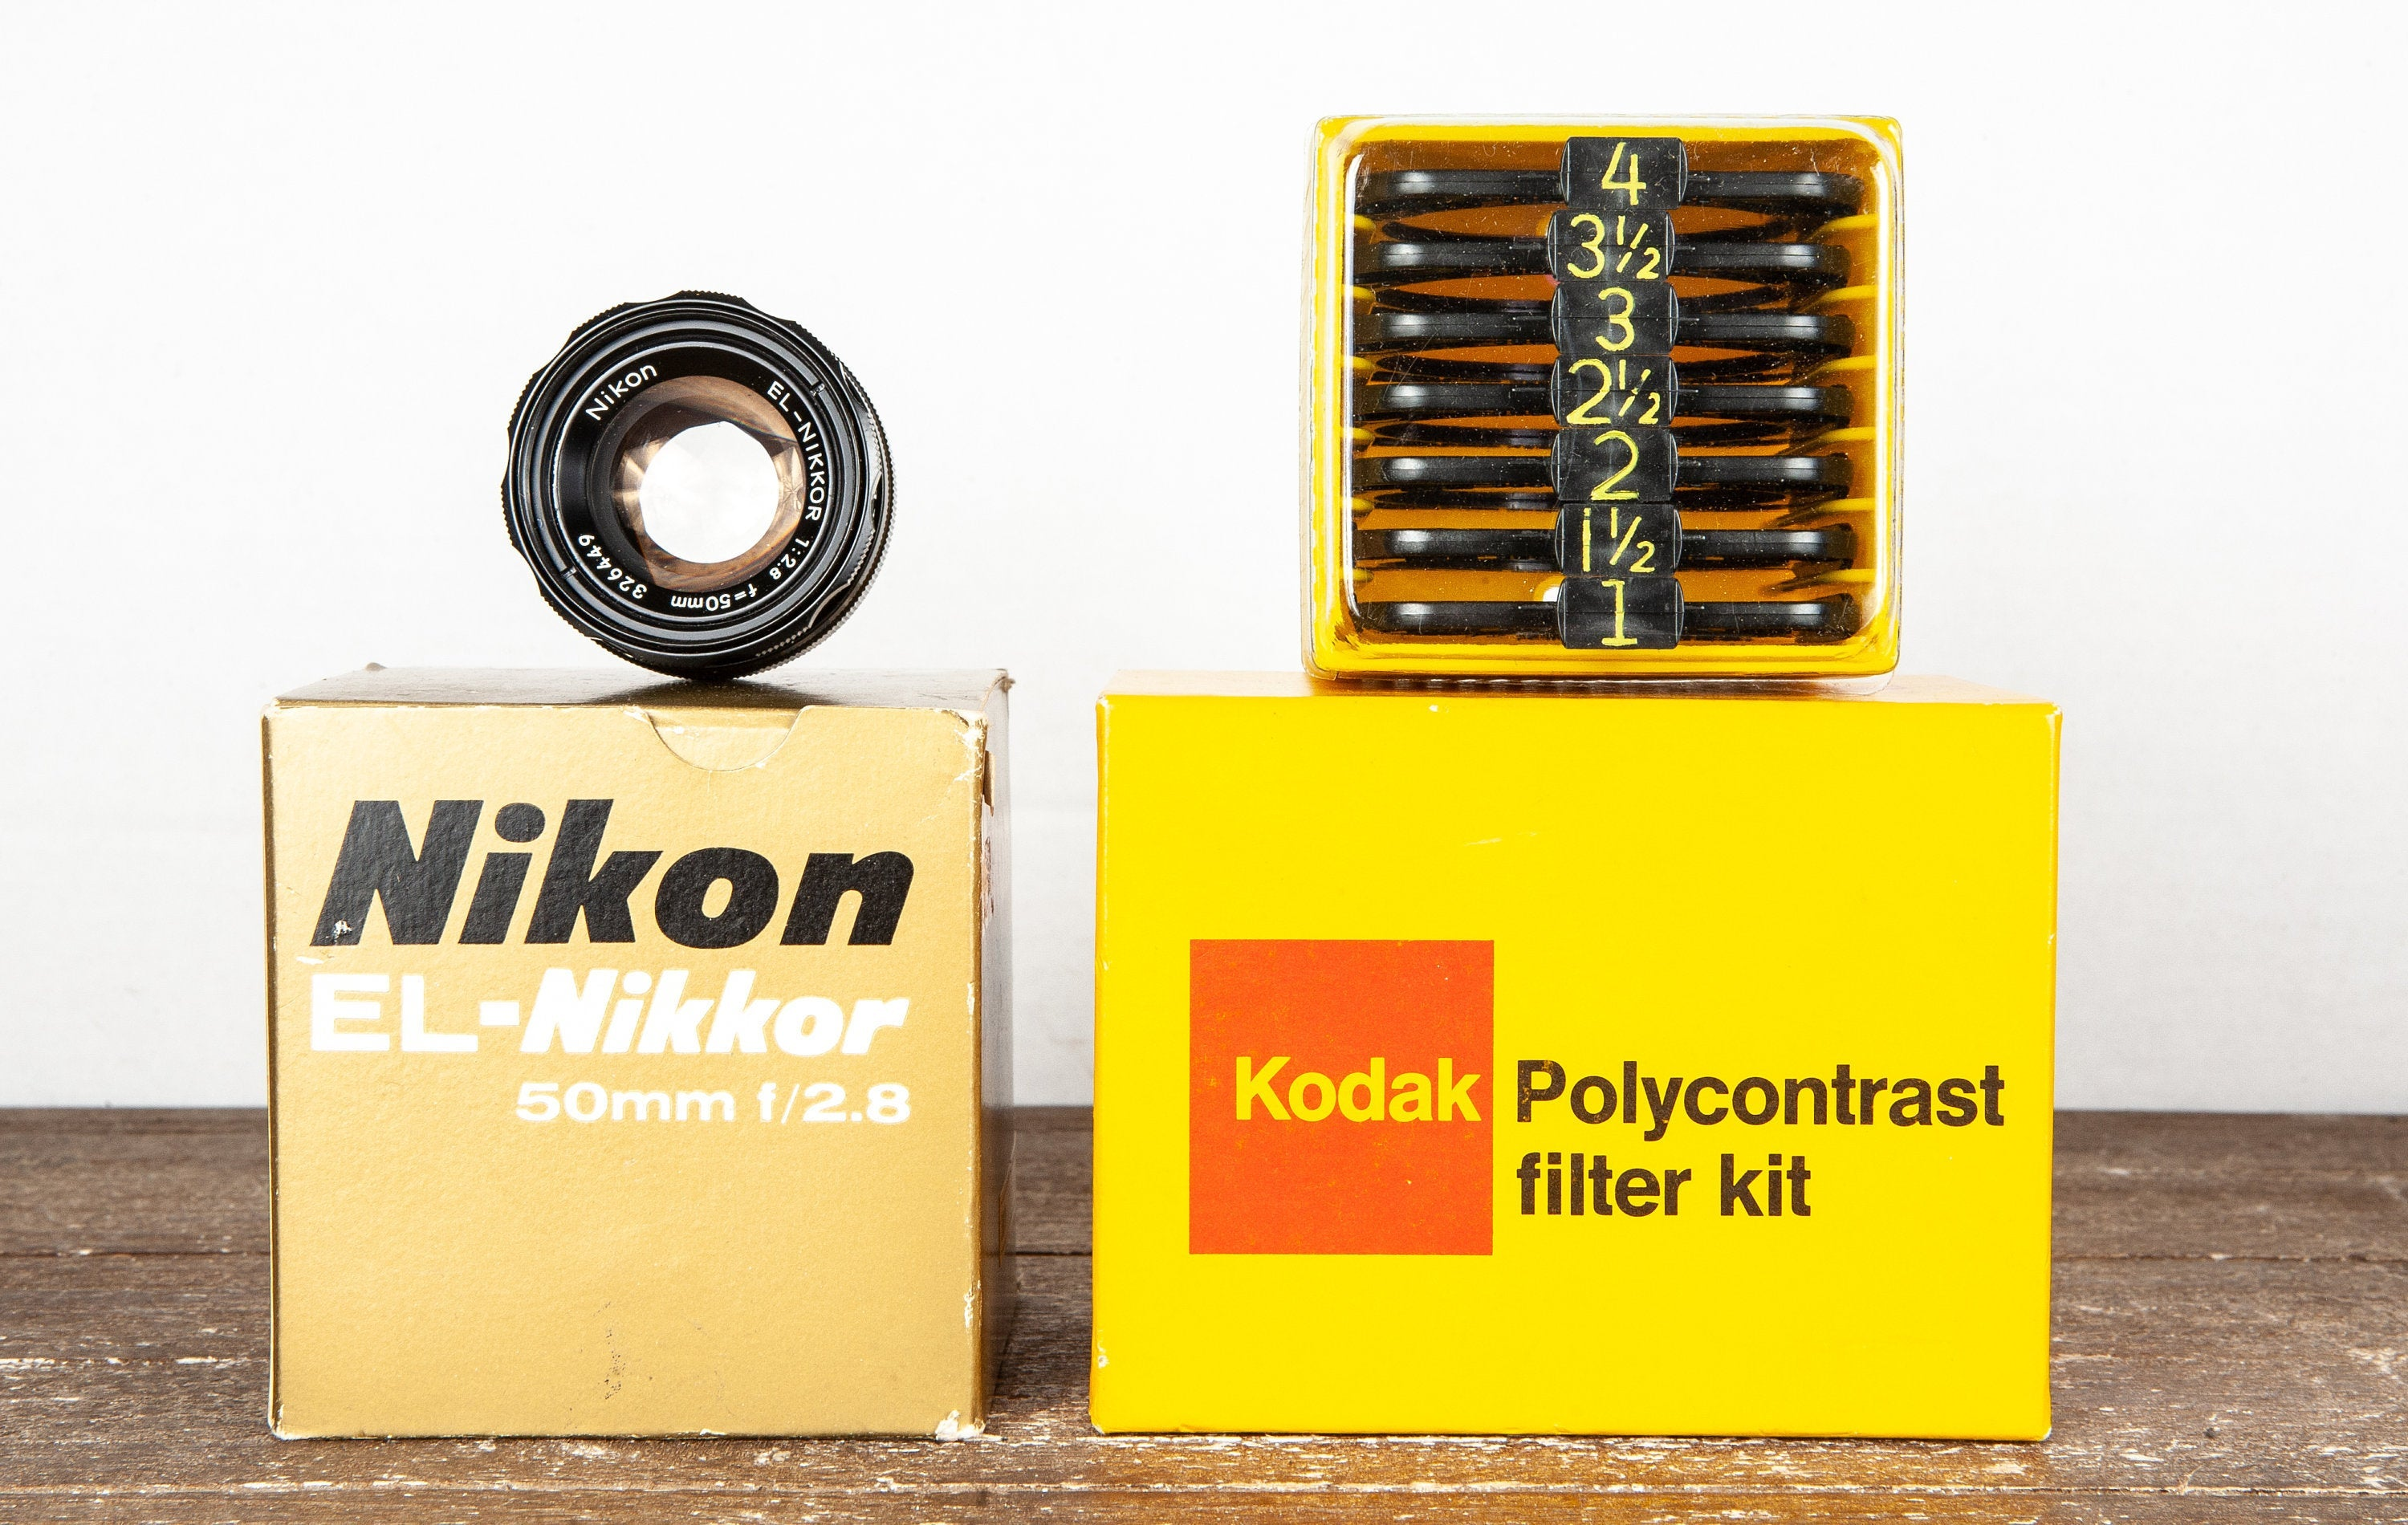 coolvintagecameras - Nikon EL-Nikkor 50mm f2.8 Enlarging Lens & Kodak Polycontrast Filter Kit Darkroom Equipment - CoolVintageCameras - Camera Accessories